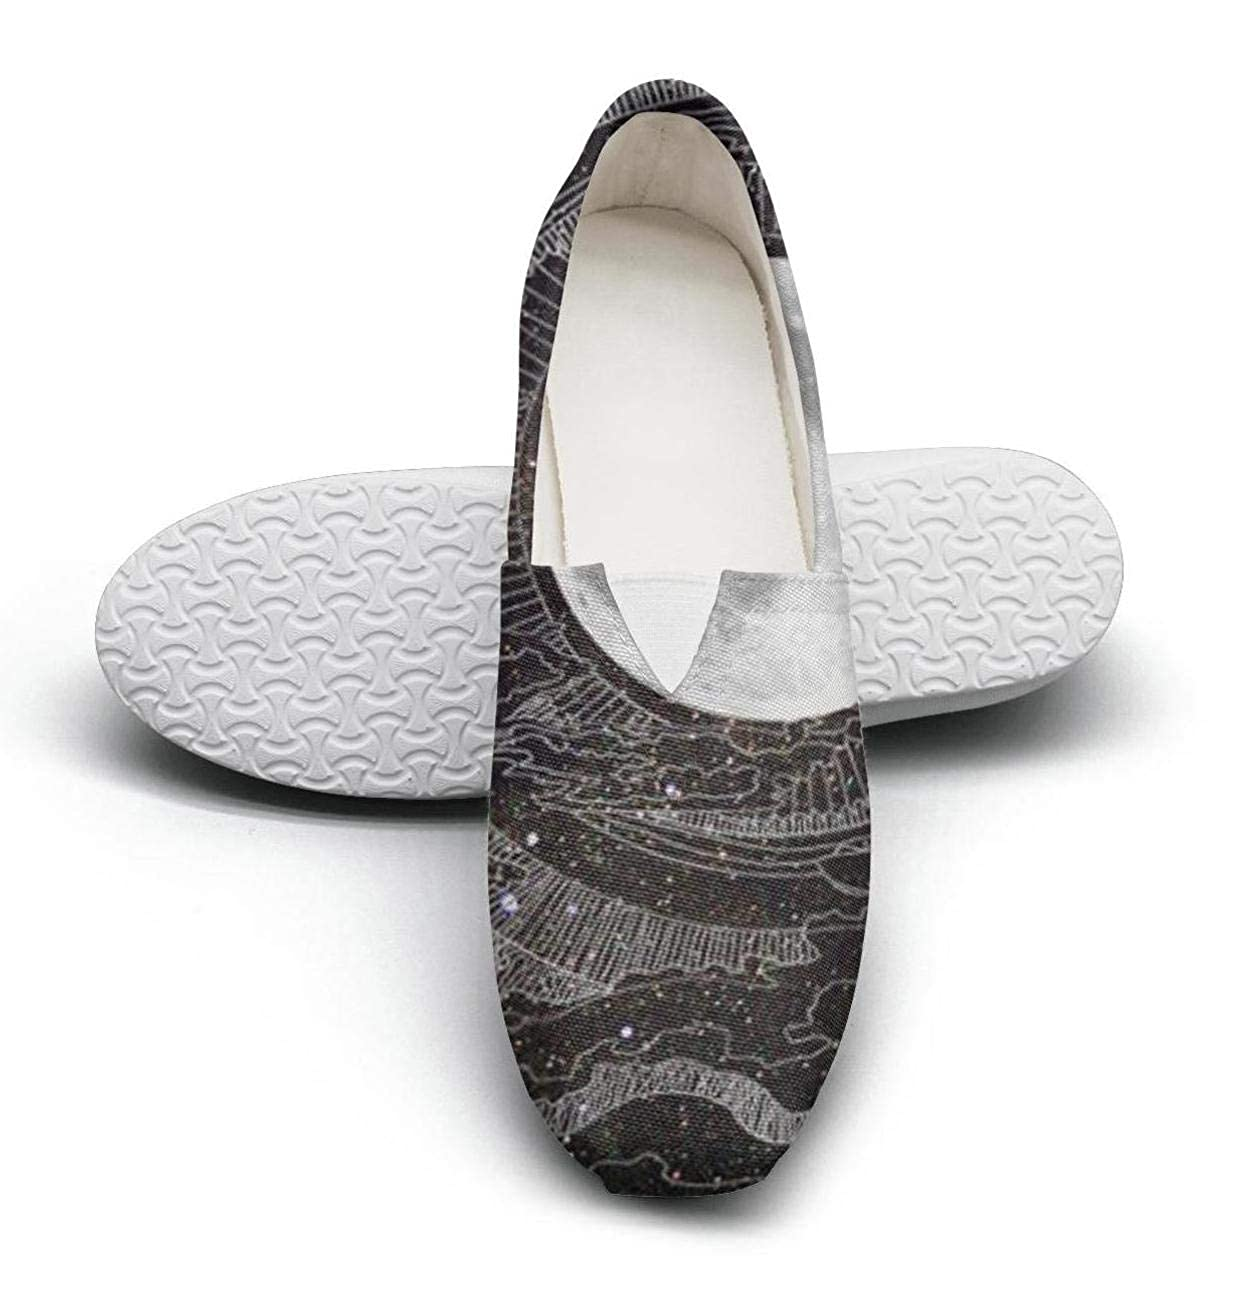 nkfbx Mystic Moon and Star Casual Slip-On Canva Shoes for Women Walking